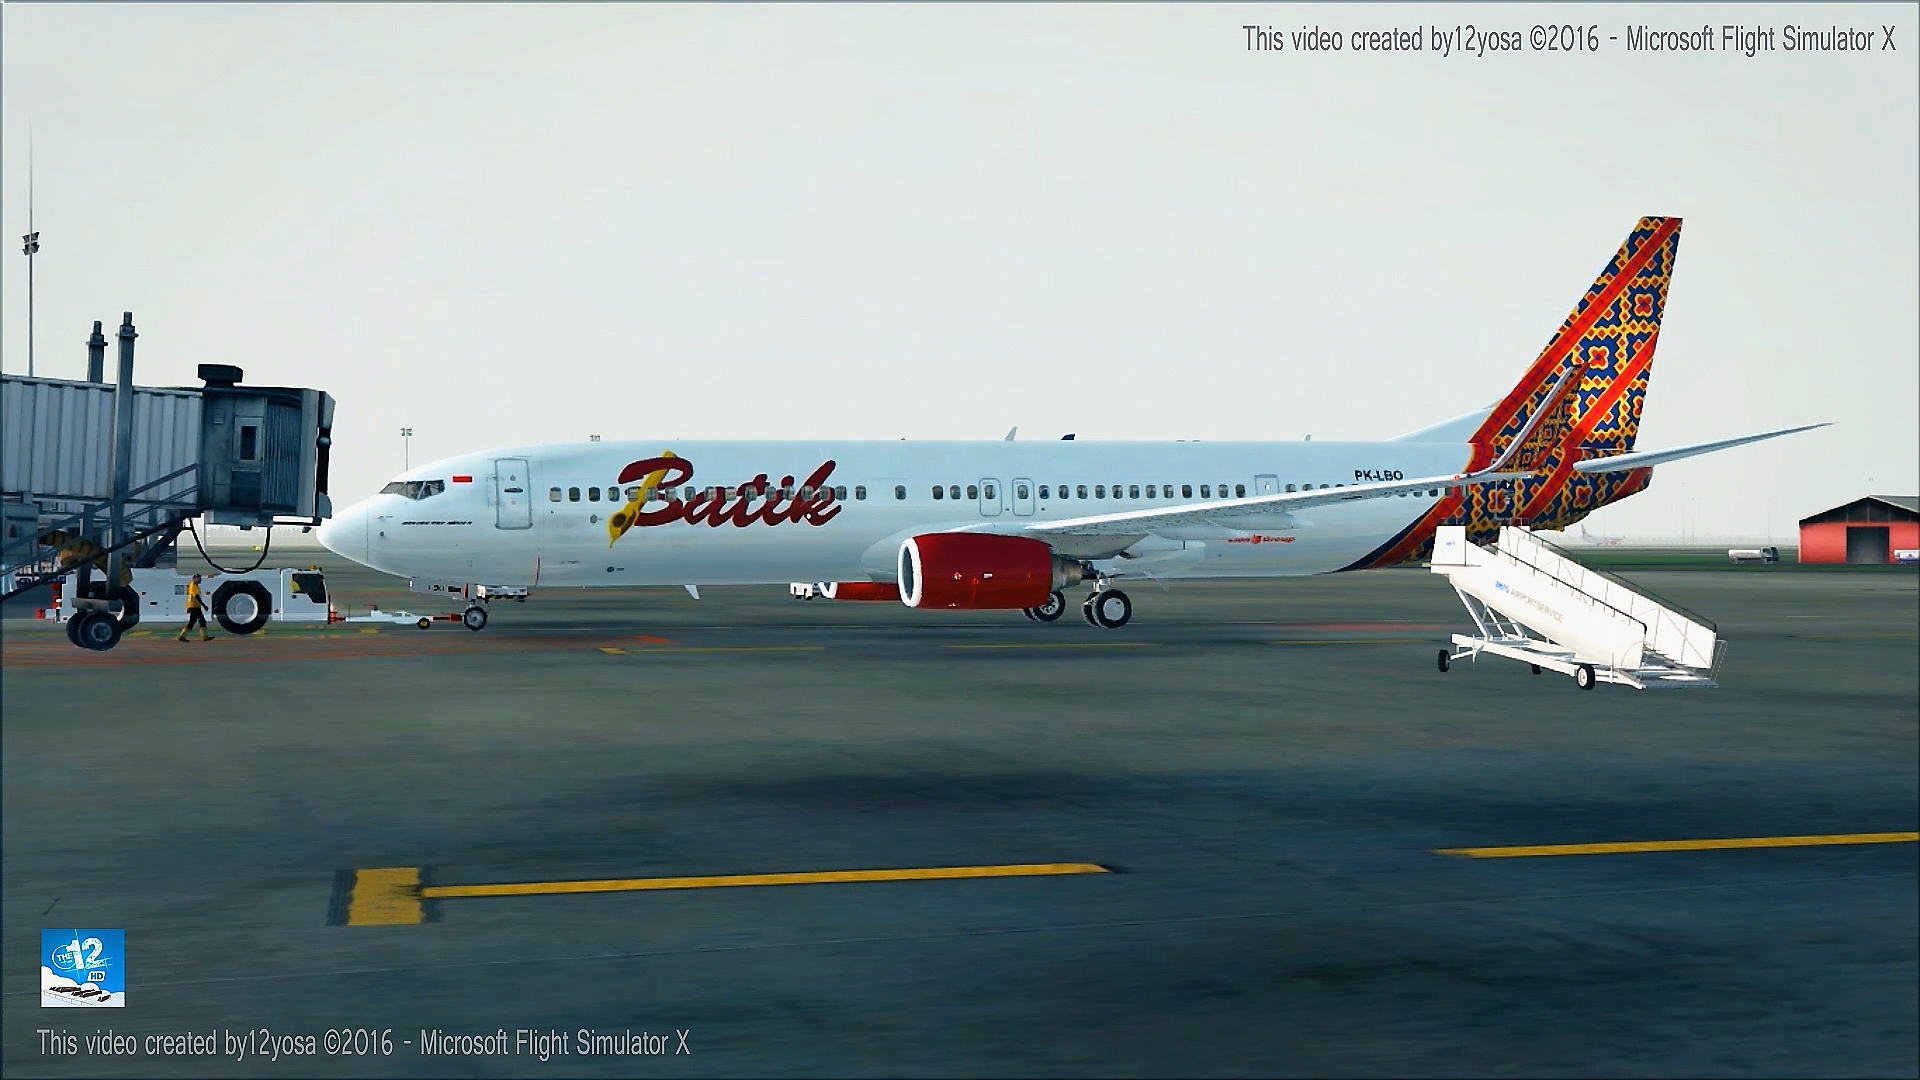 737 batik air good morning jakarta videos screenshots batik air by12yosa screenshoot bg stopboris Image collections